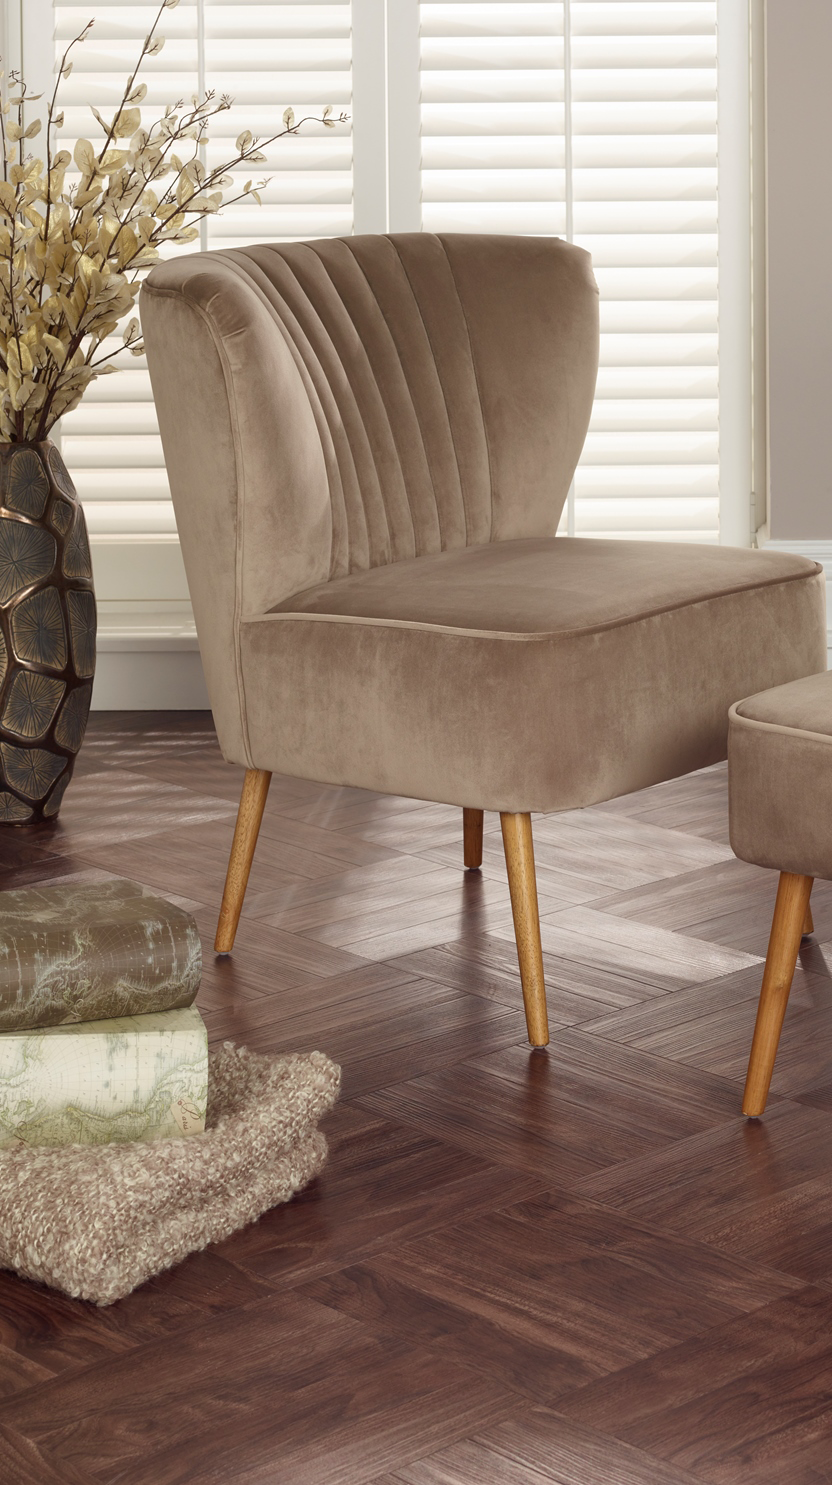 Sessel Tapezieren Prestwick Cocktail Chair In 2019 | Style: Glamorous | Home